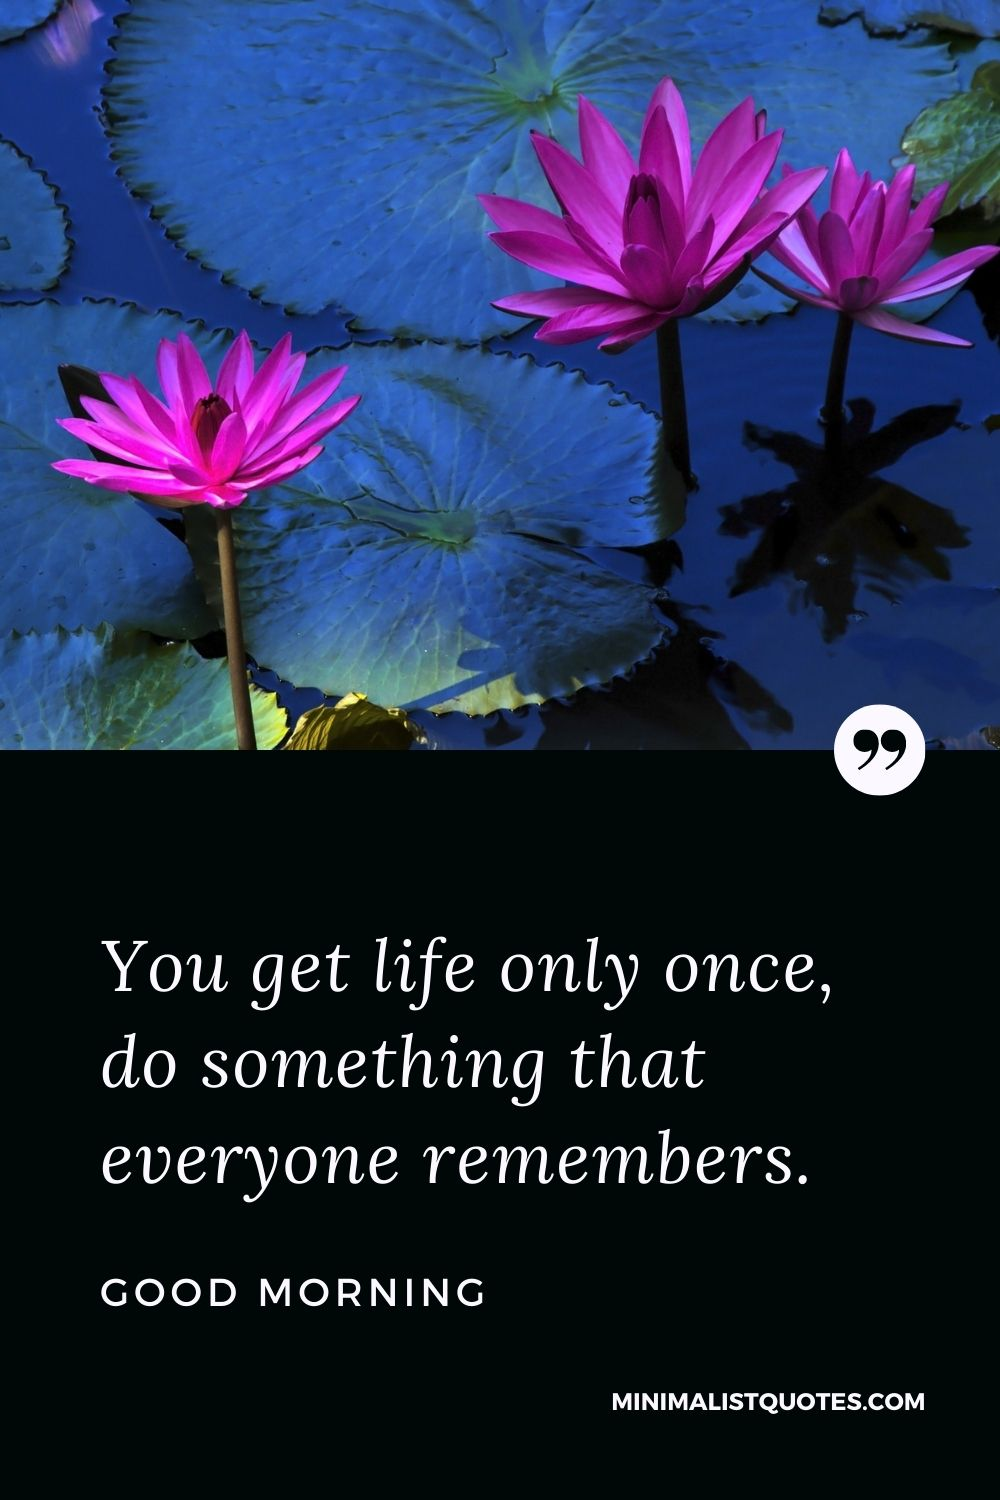 Good Morning Wish & Message With Image: You get life only once, do something that everyone remembers.